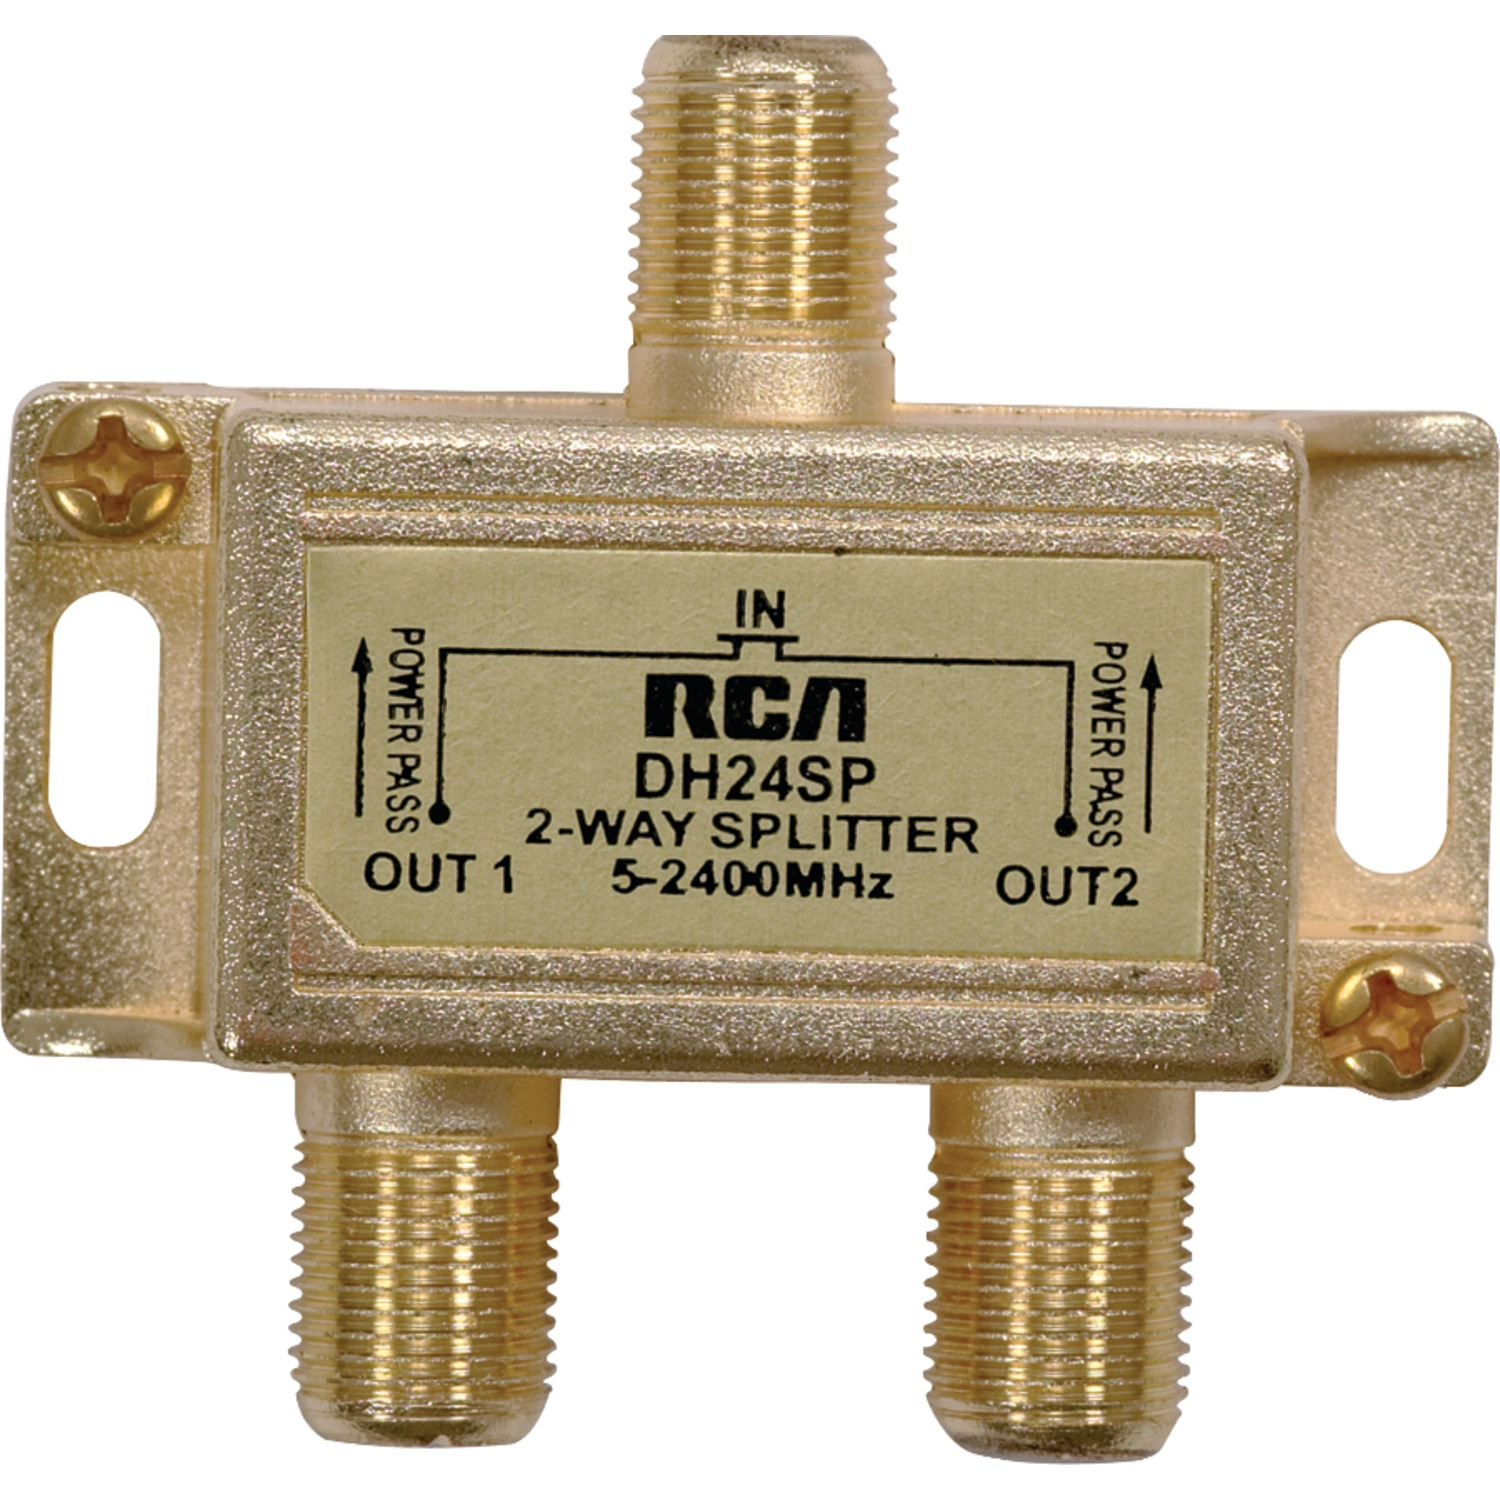 Rca Dh24spf 3ghz Digital Plus 2-way Splitter